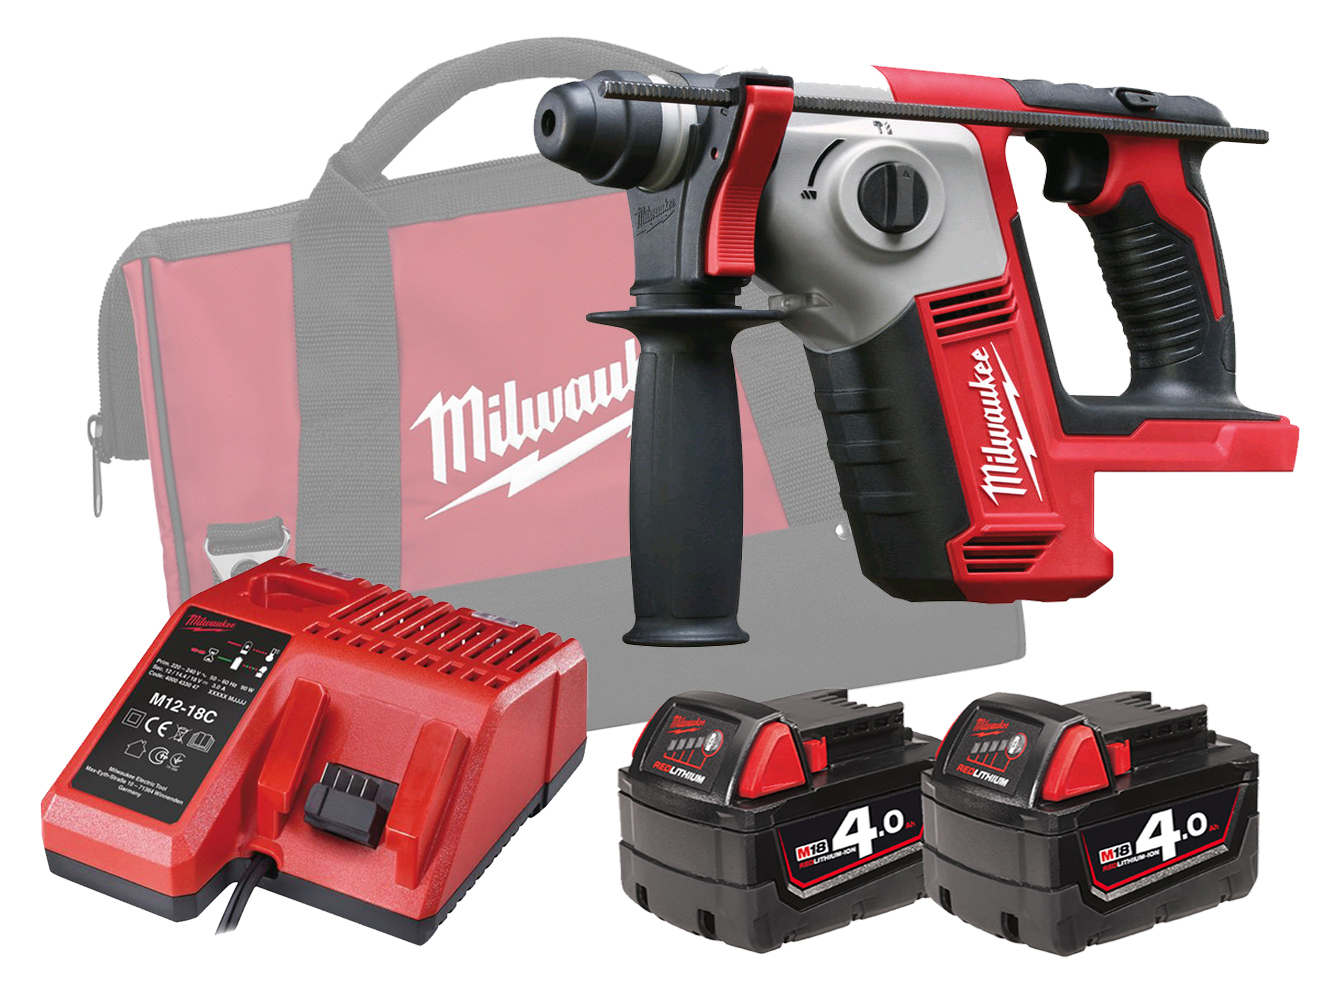 MILWAUKEE 18V COMPACT SDS+ 2 MODE ROTARY HAMMER - M18BH - 4.0AH PACK